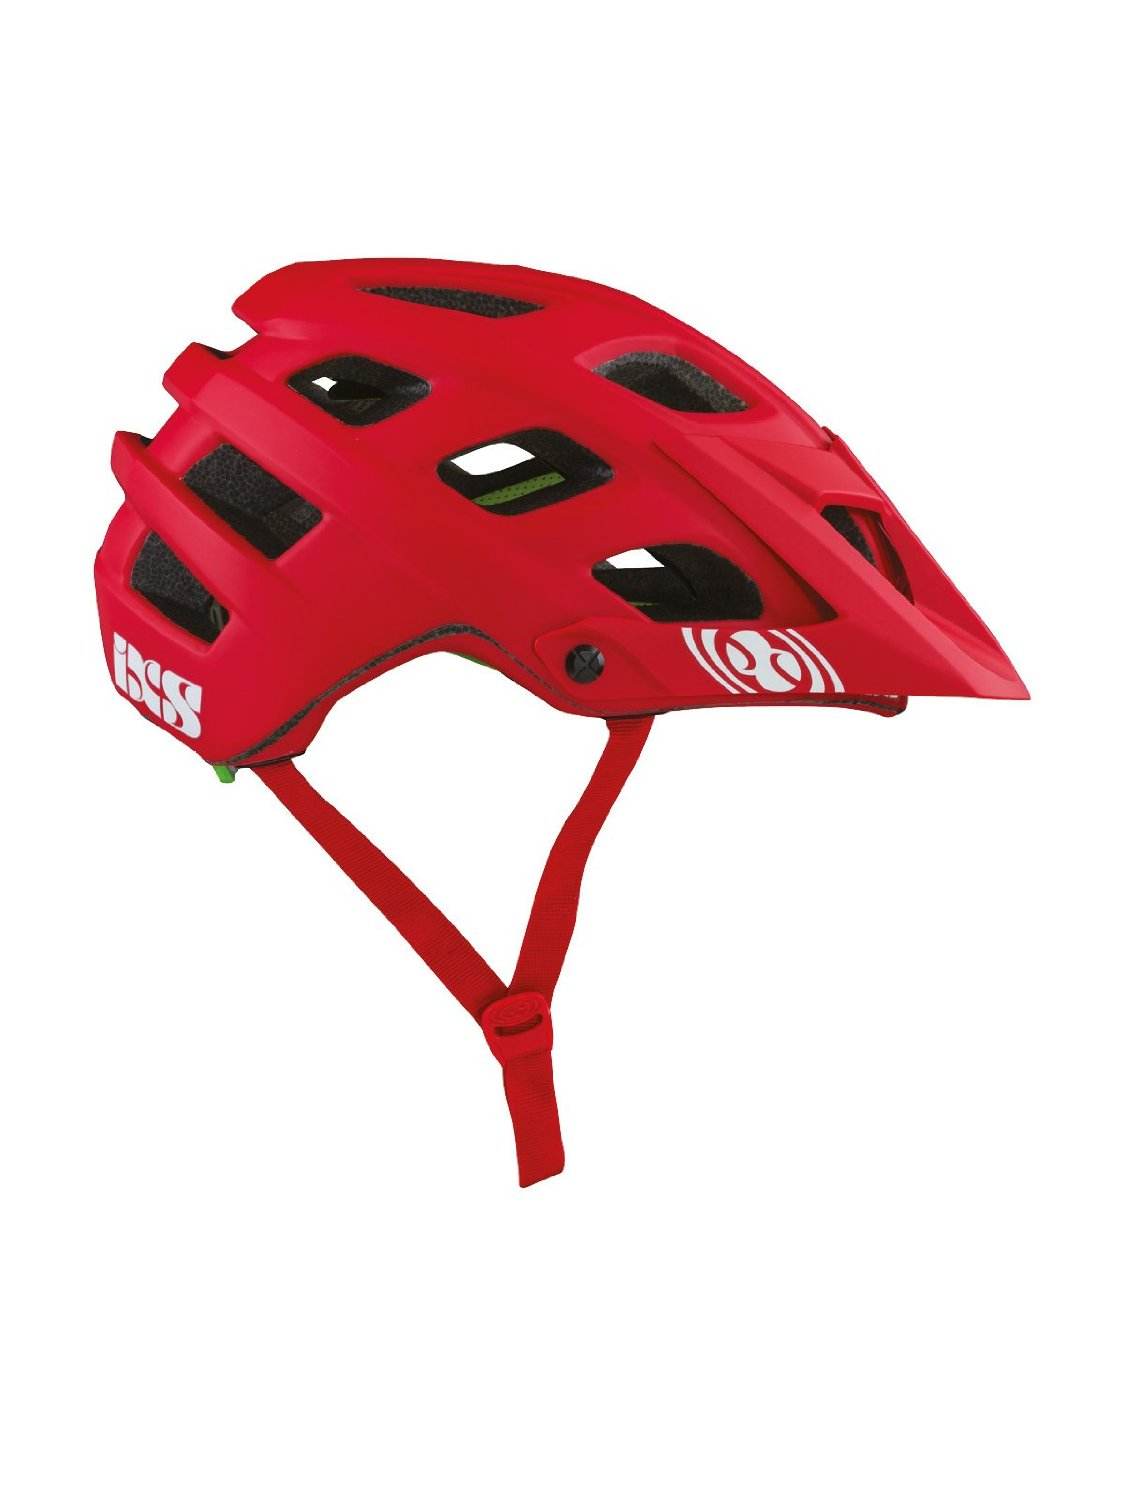 Large IXS Bicycle Helmets